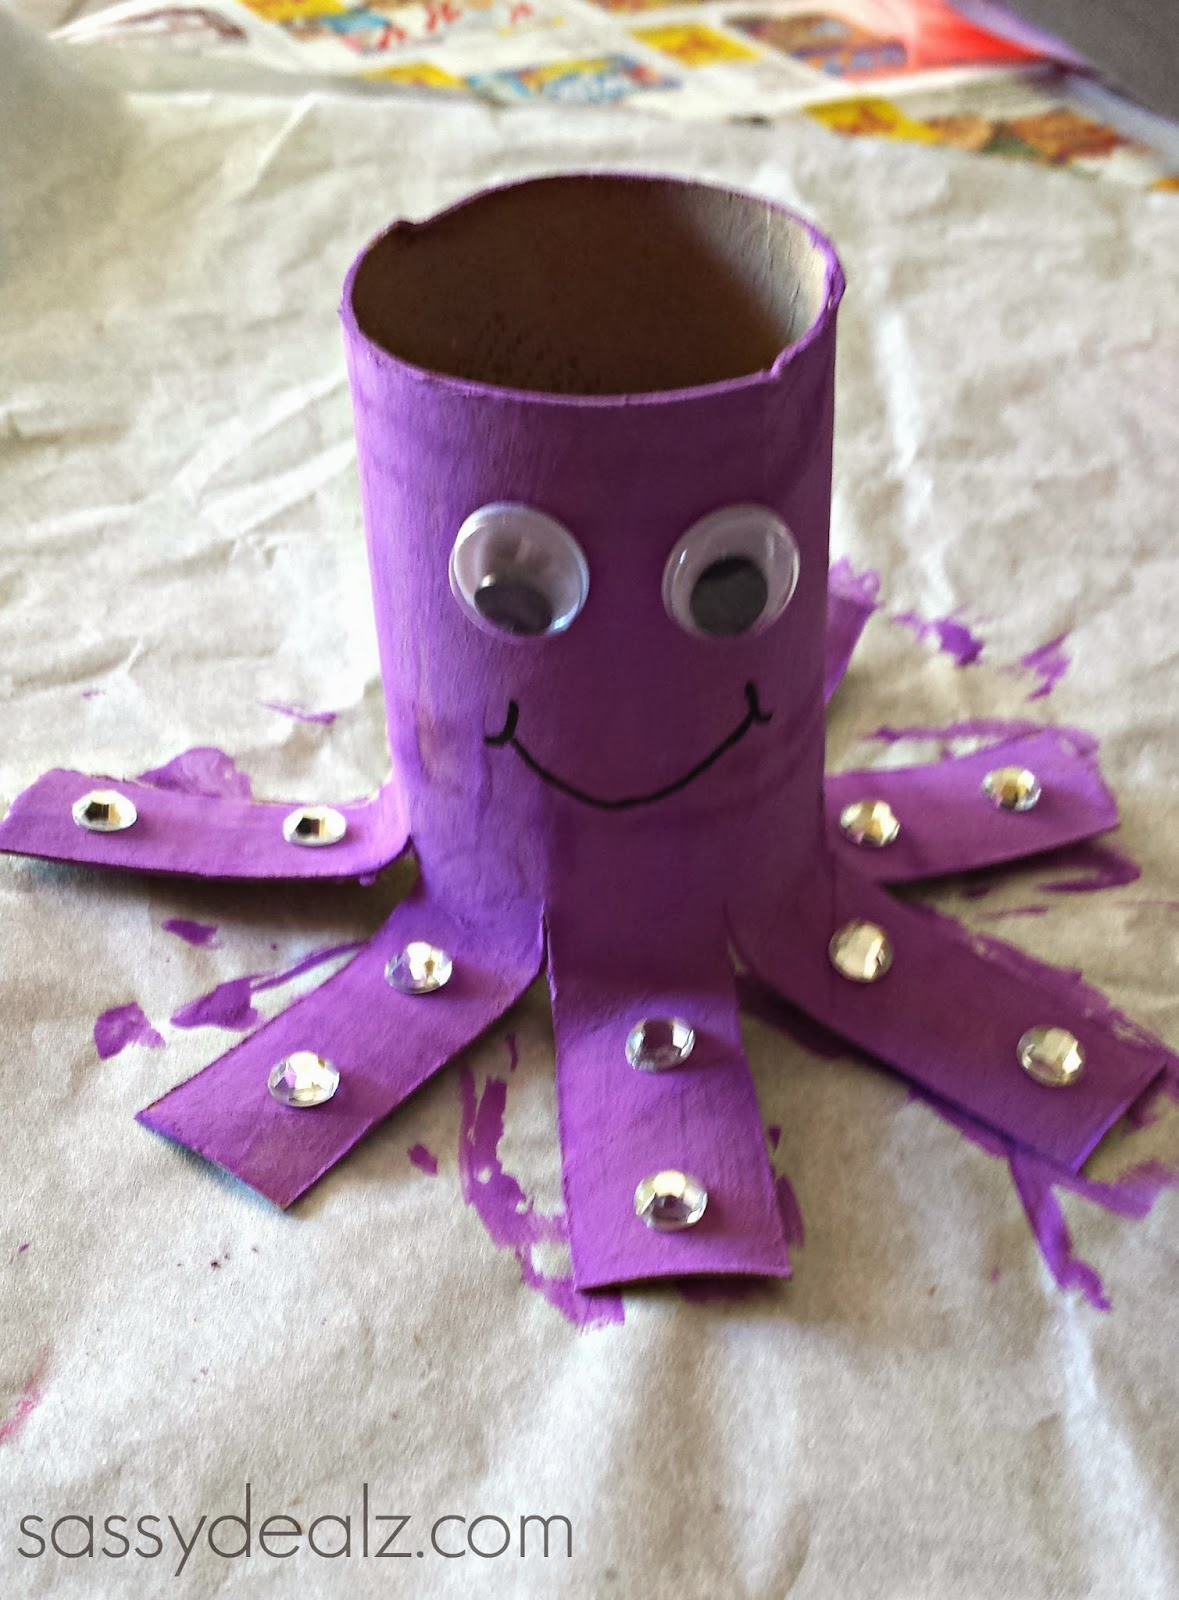 craft ideas using empty toilet paper rolls 51 toilet paper roll crafts do small things with great 8046